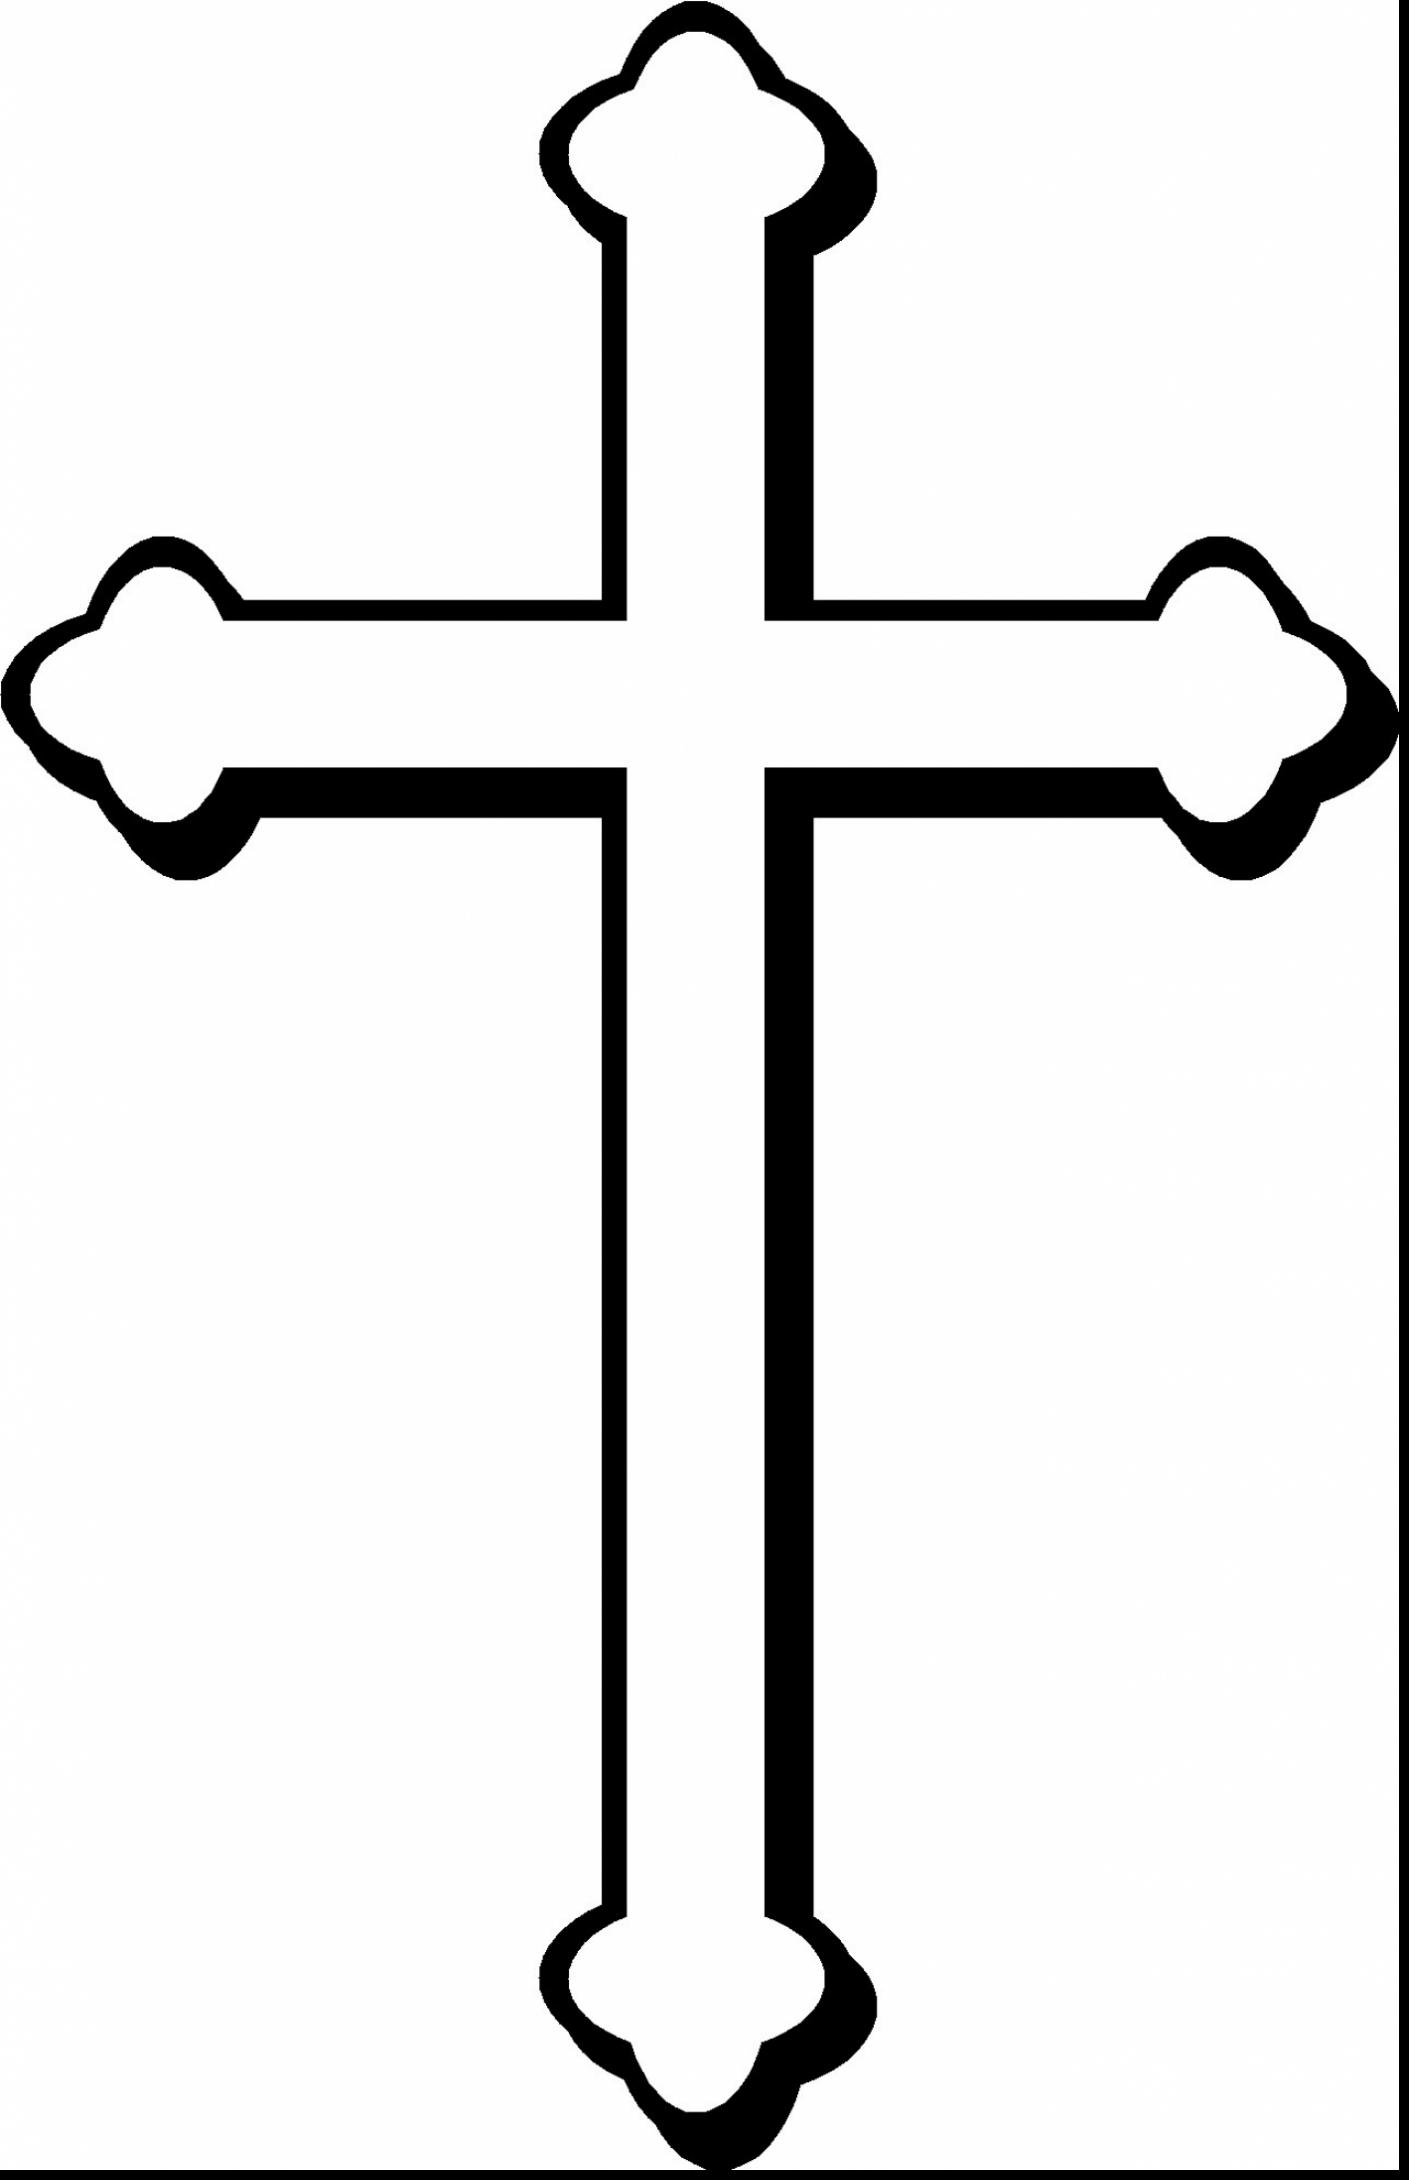 Christian cross clipart awesome picture download Collection of Christian cross clipart | Free download best Christian ... picture download